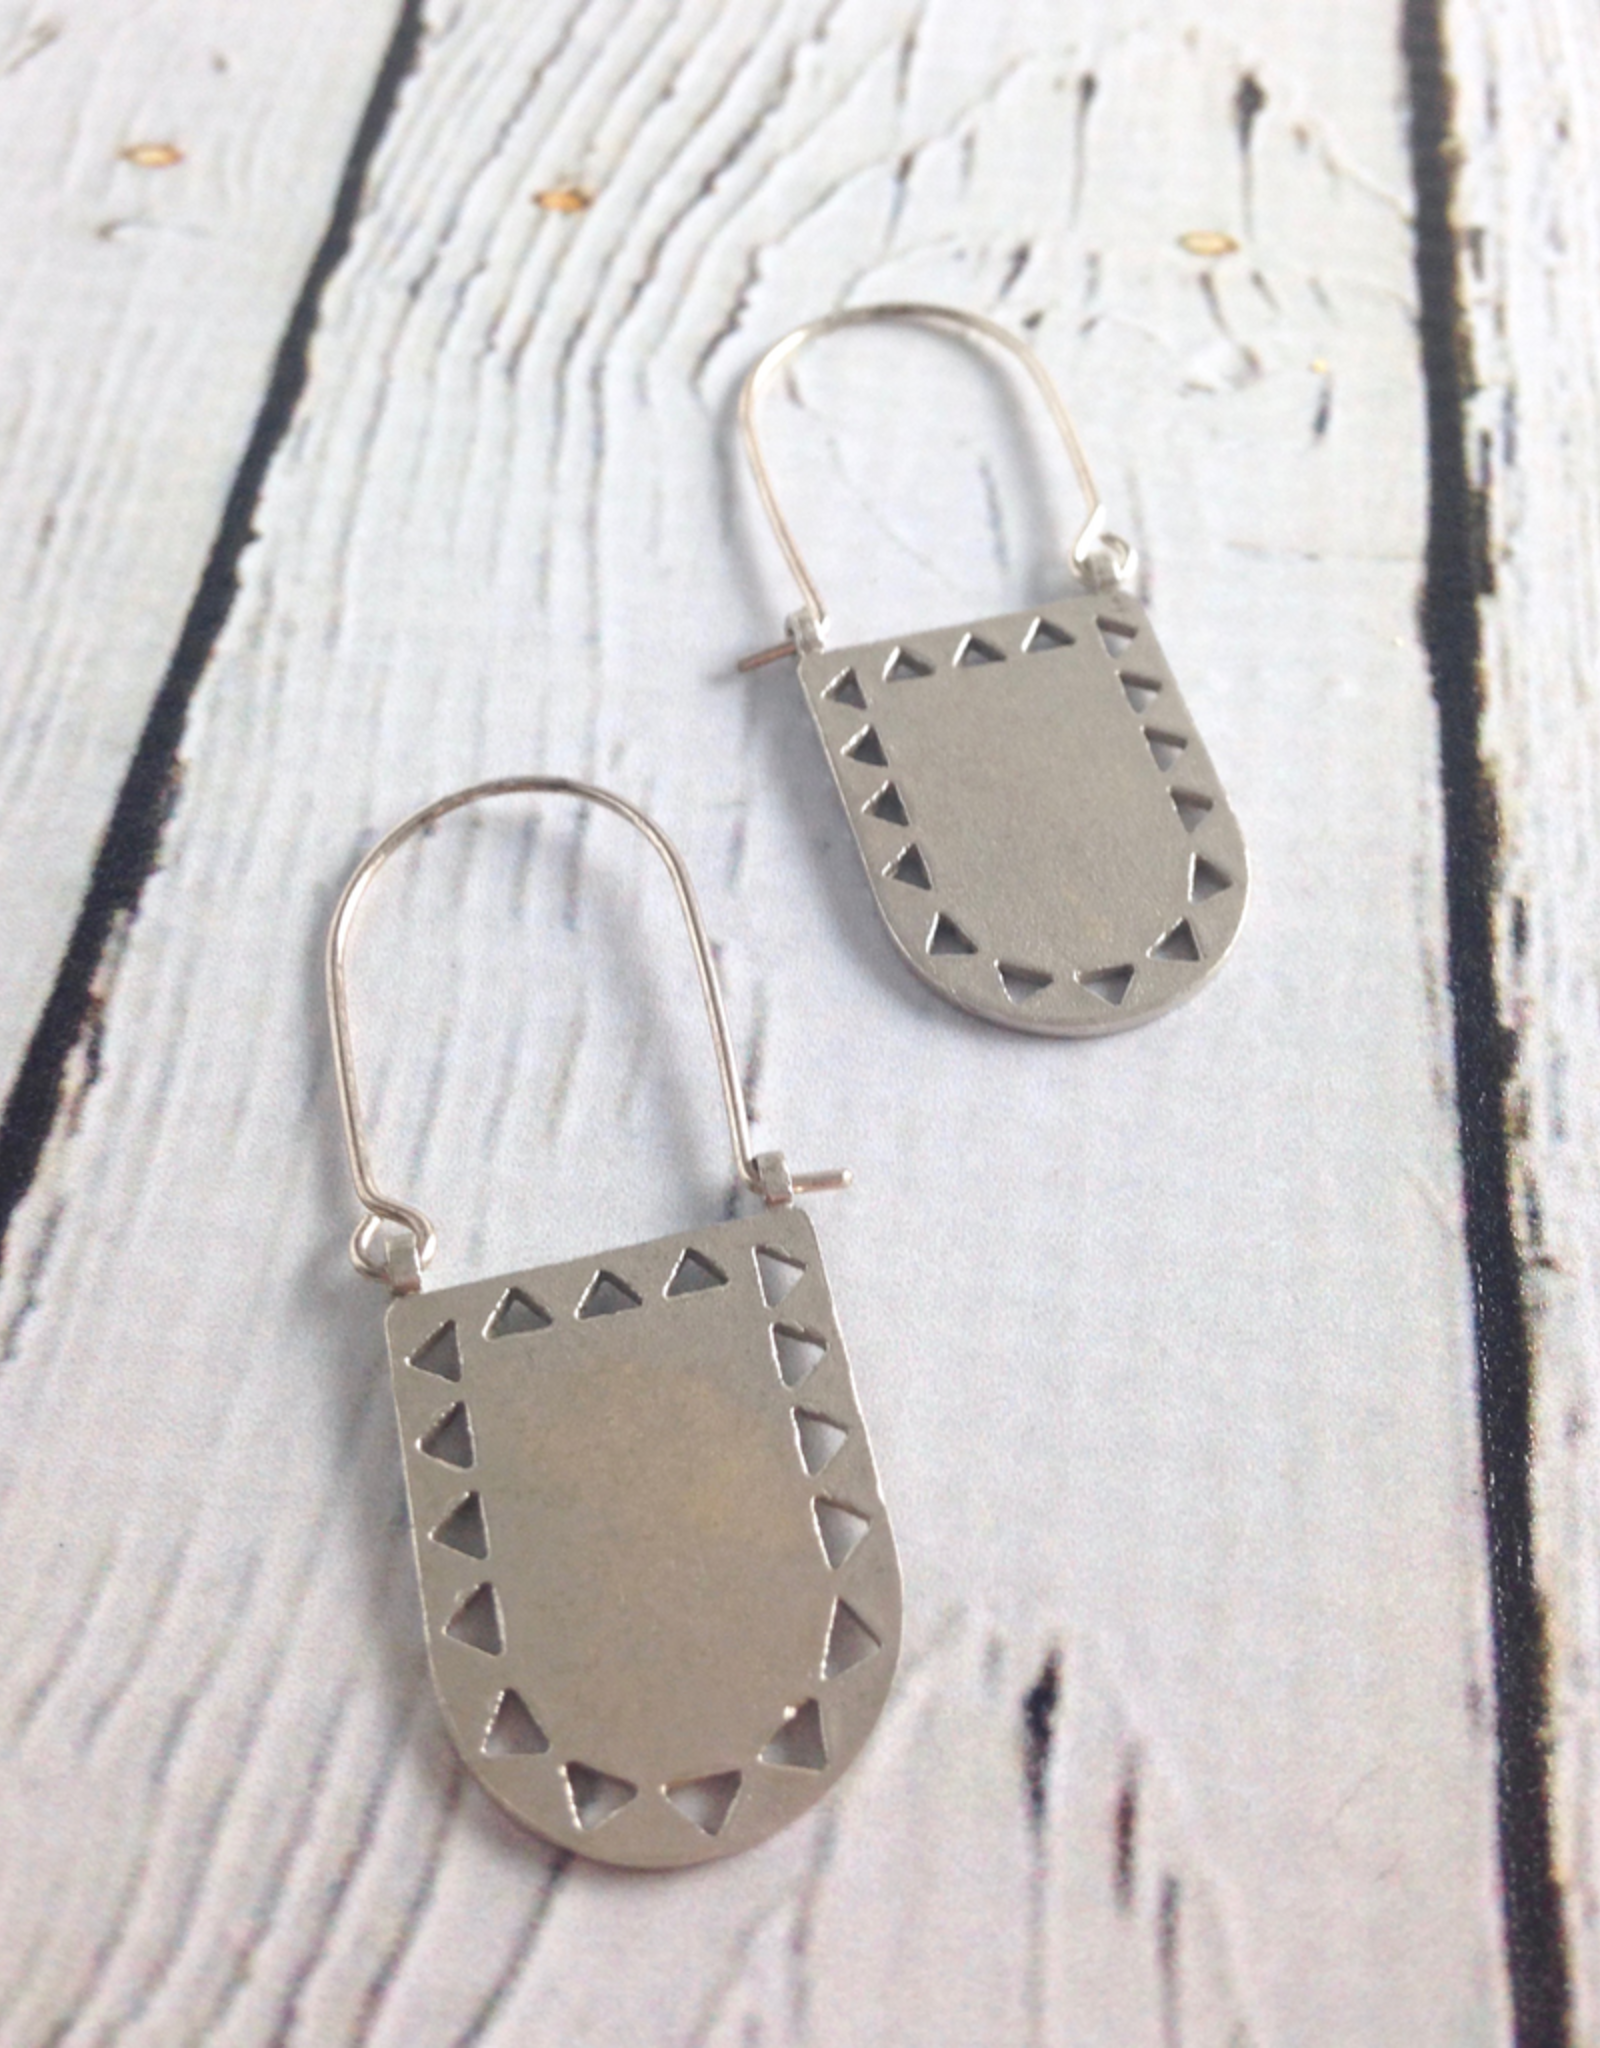 Silver Portal Earrings by Molly M. Designs